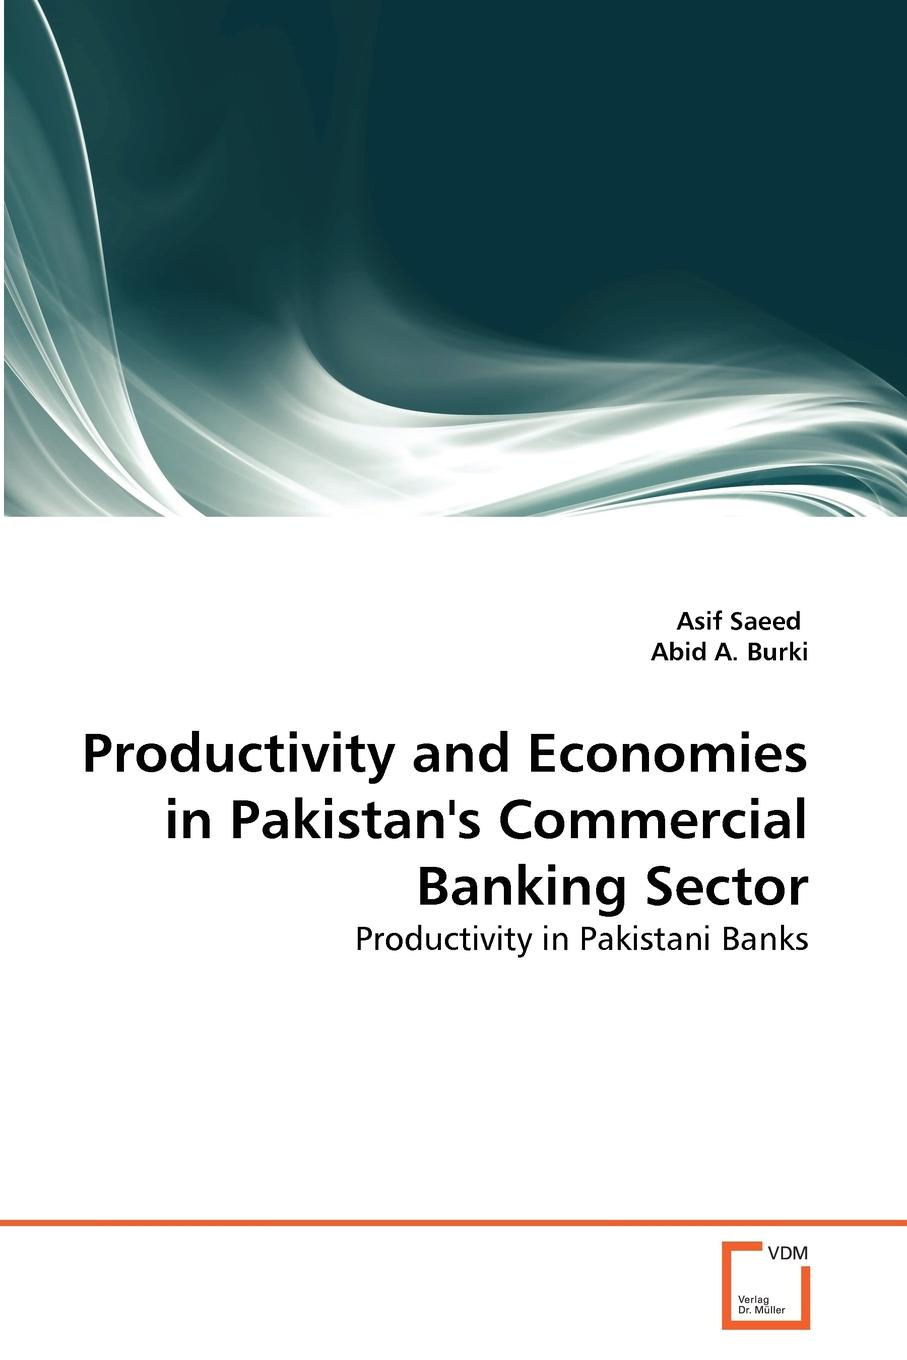 Asif Saeed, Abid A. Burki Productivity and Economies in Pakistan.s Commercial Banking Sector political violence and fdi a case study of pakistan telecom sector